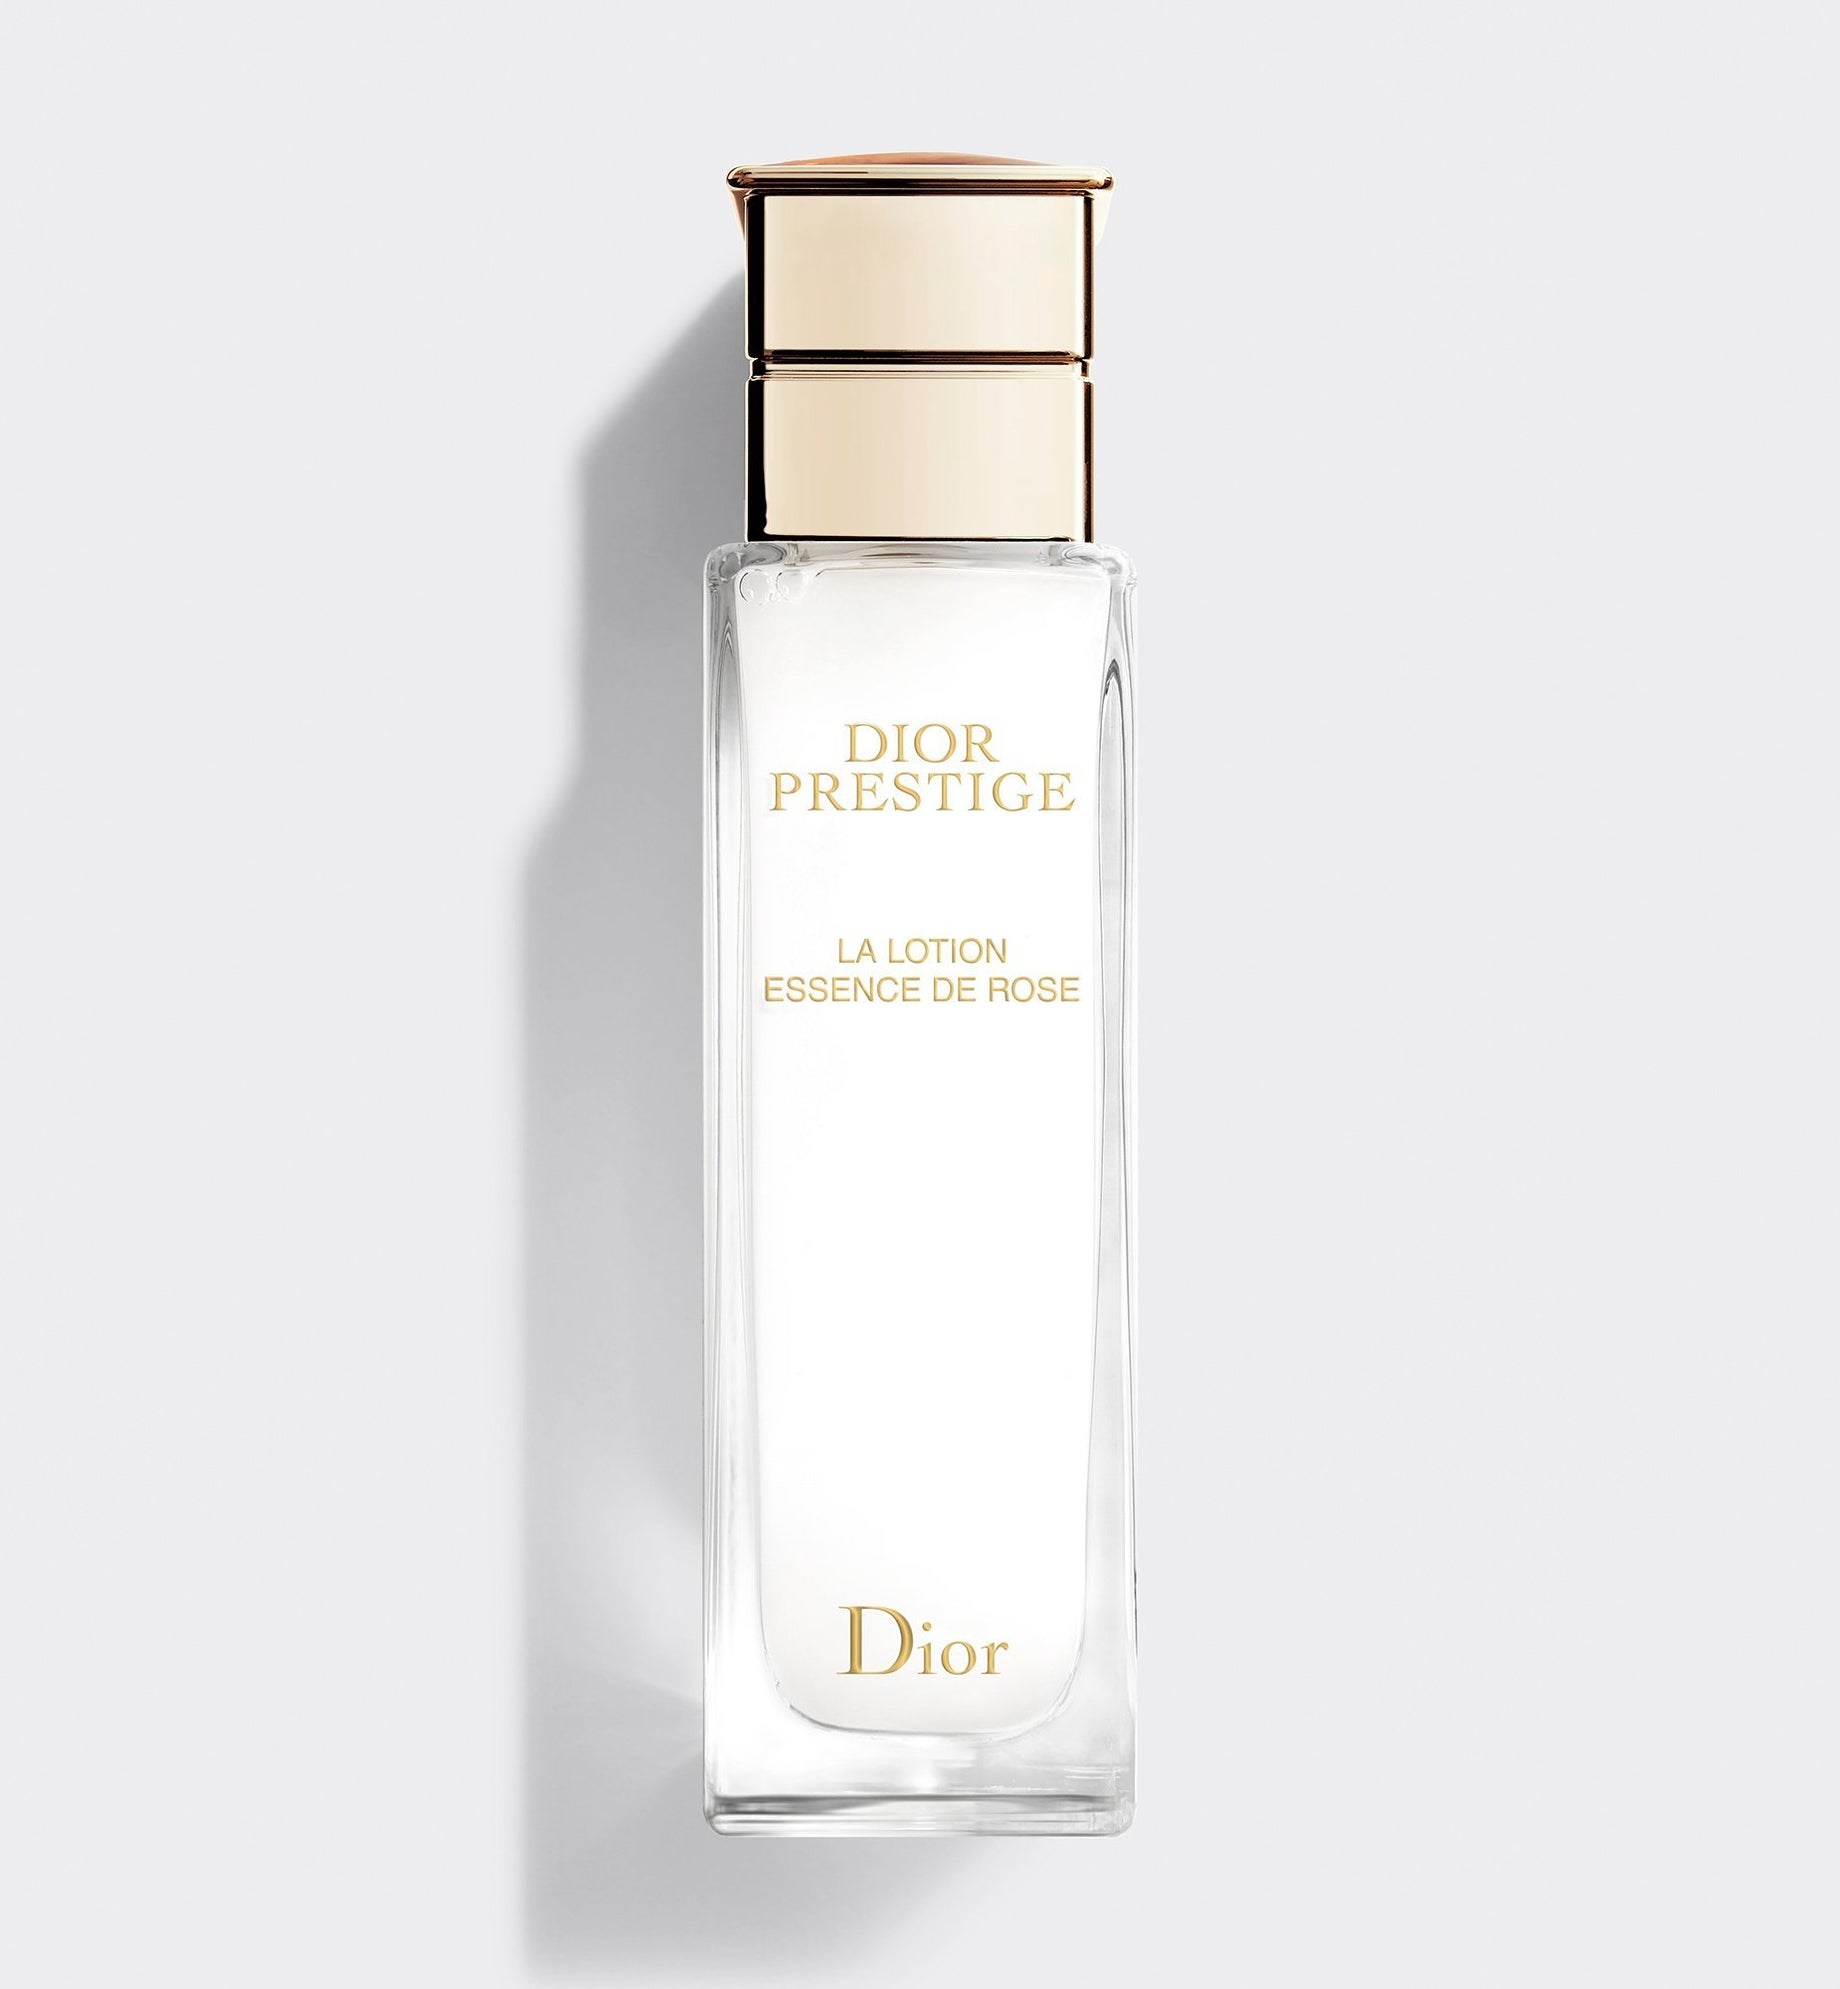 DIOR PRESTIGE LA LOTION ESSENCE DE ROSE